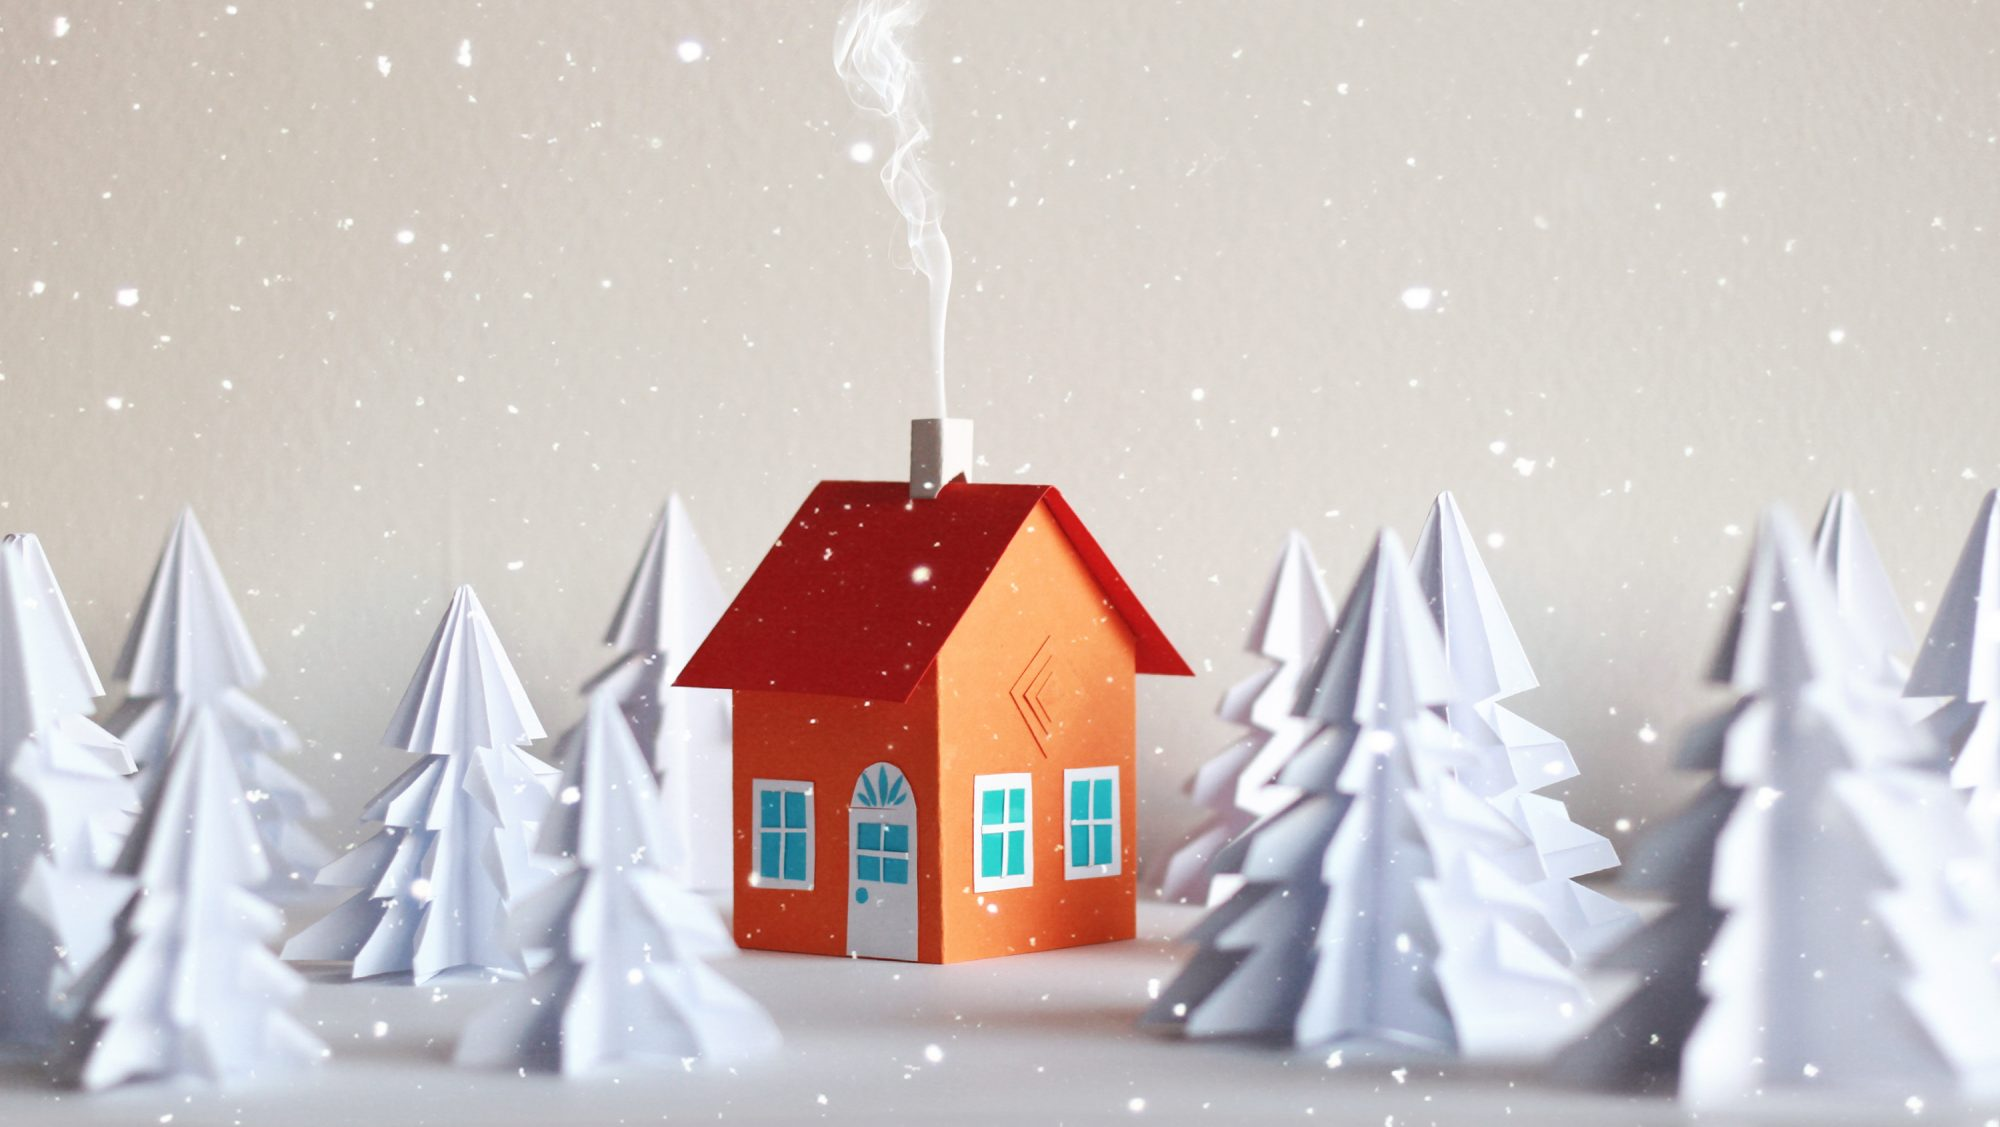 Preparing your home for fall and winter - how to prepare your house (house in winter)